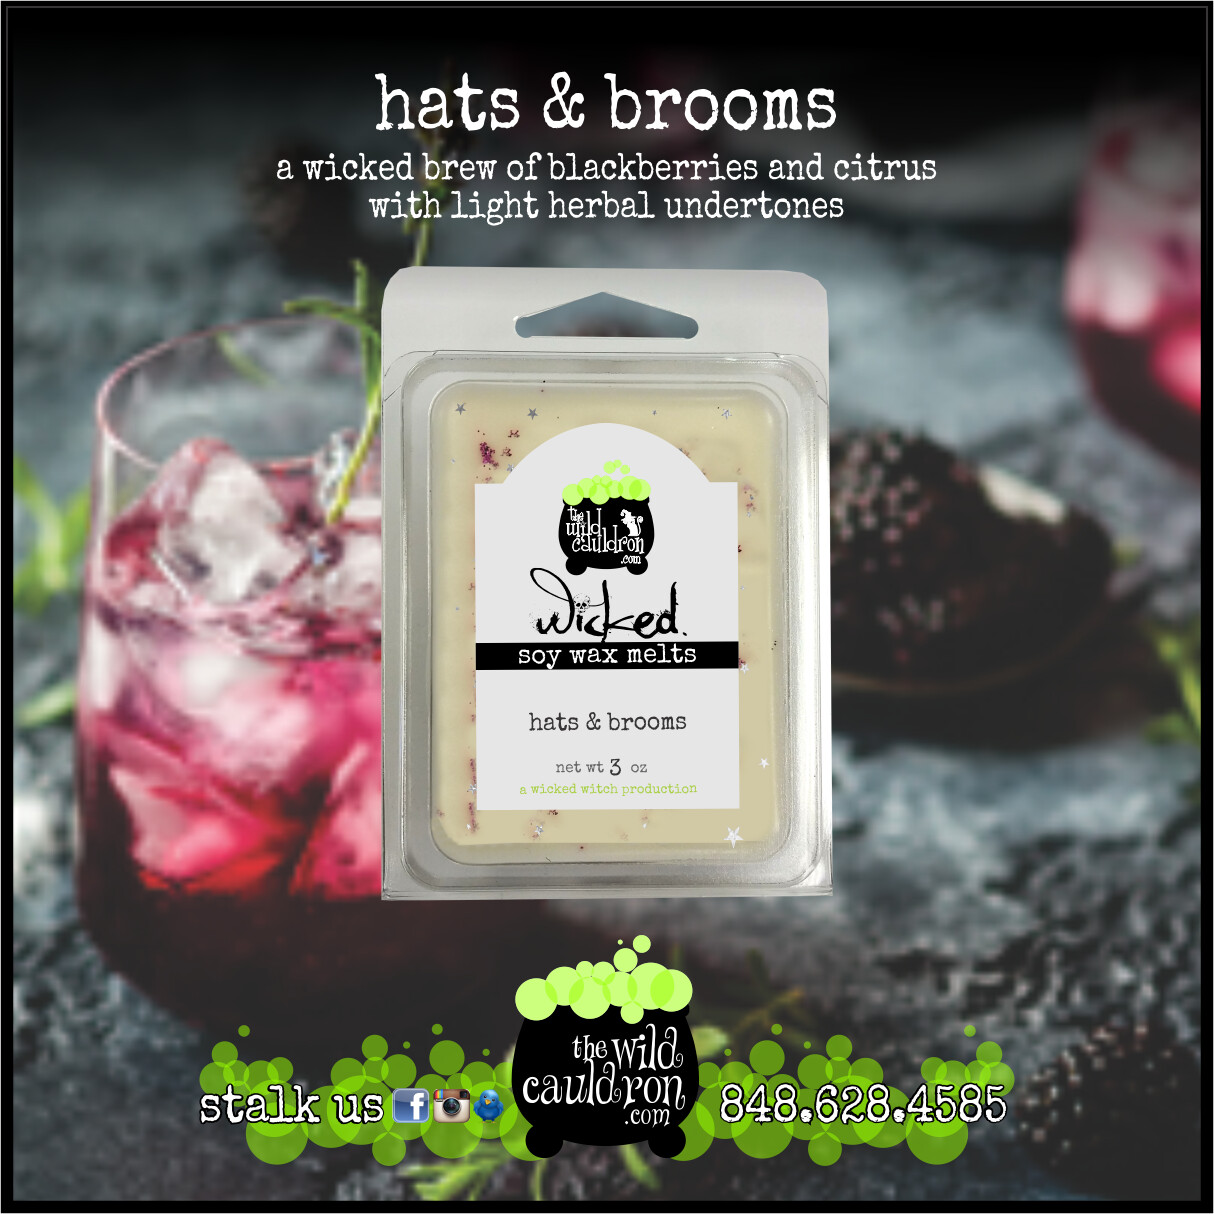 Hats and Brooms Wicked Wax Melts